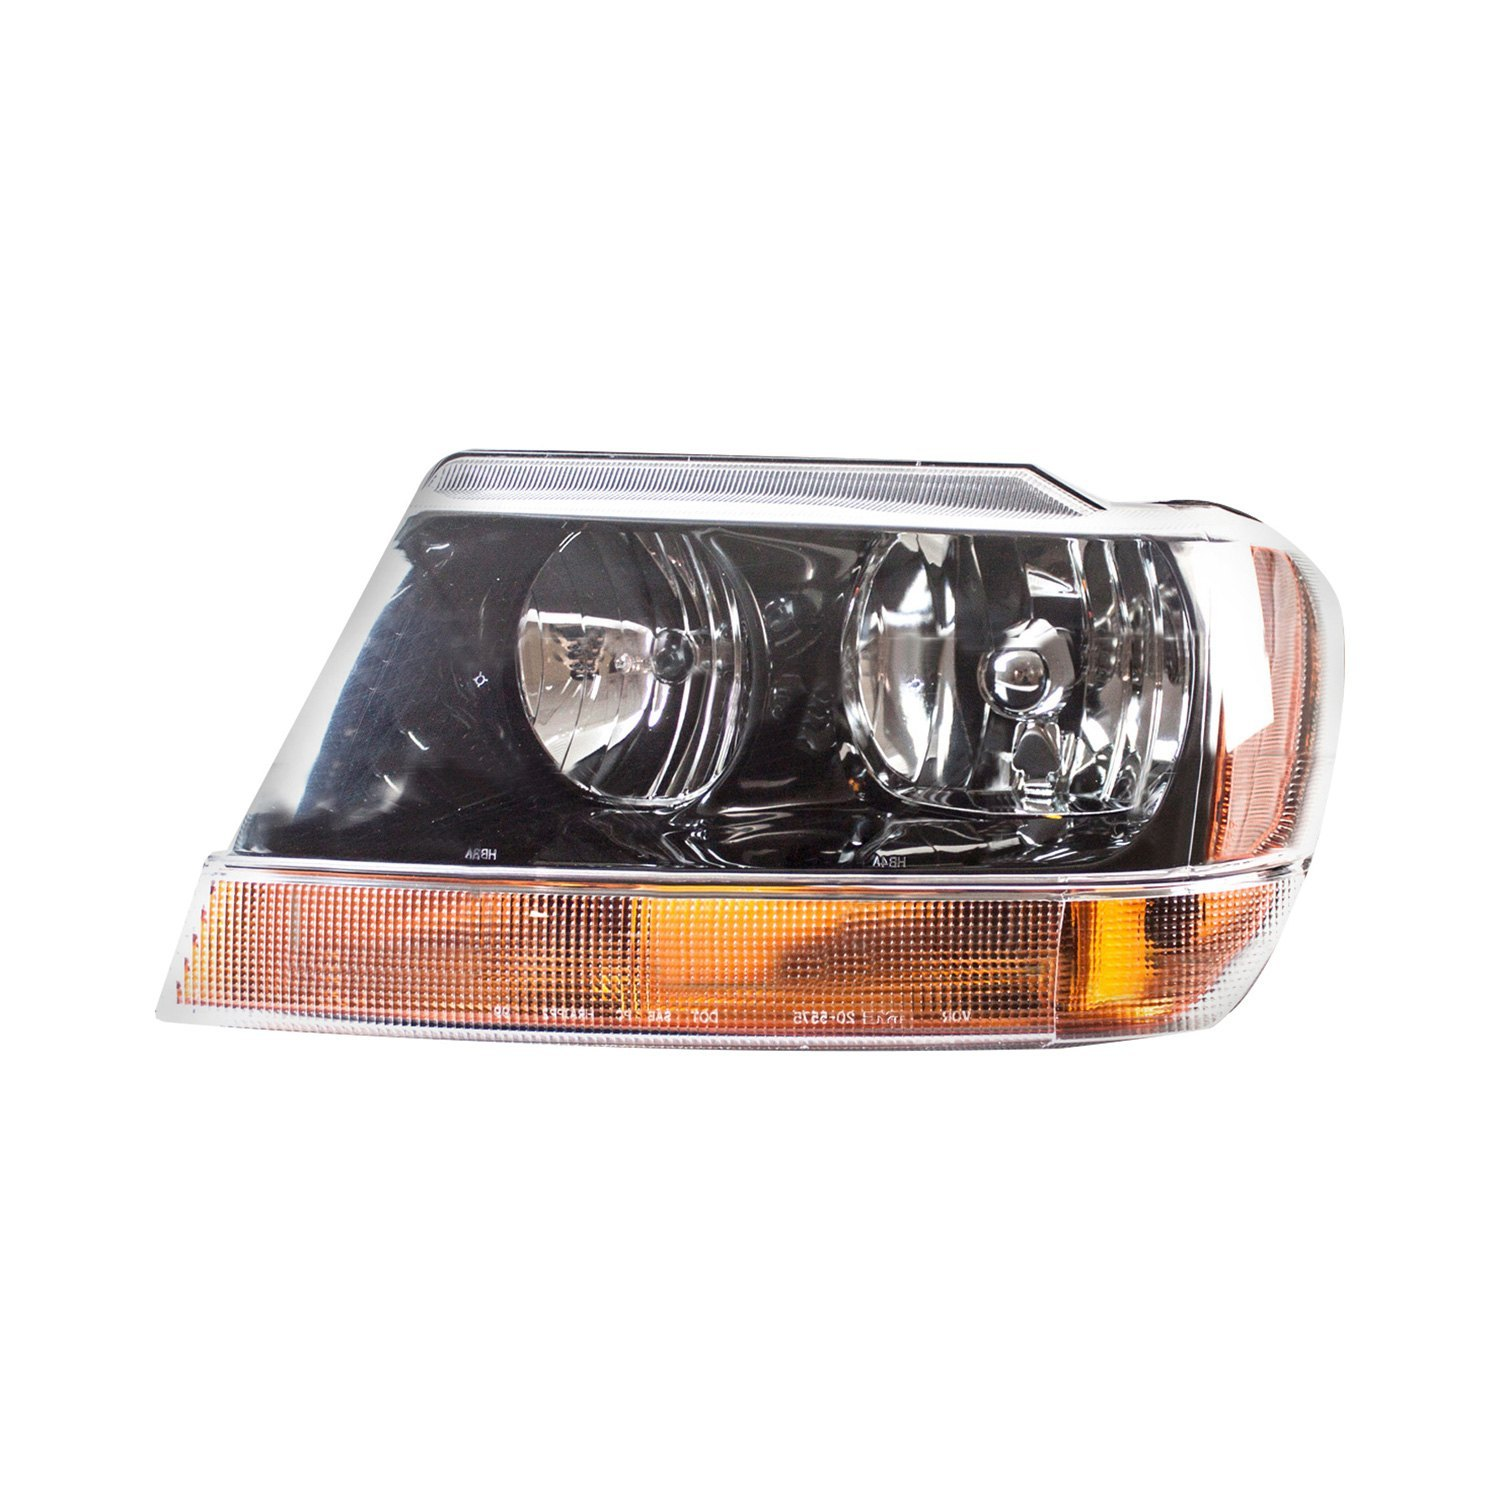 tyc jeep grand cherokee 2002 replacement headlight. Black Bedroom Furniture Sets. Home Design Ideas